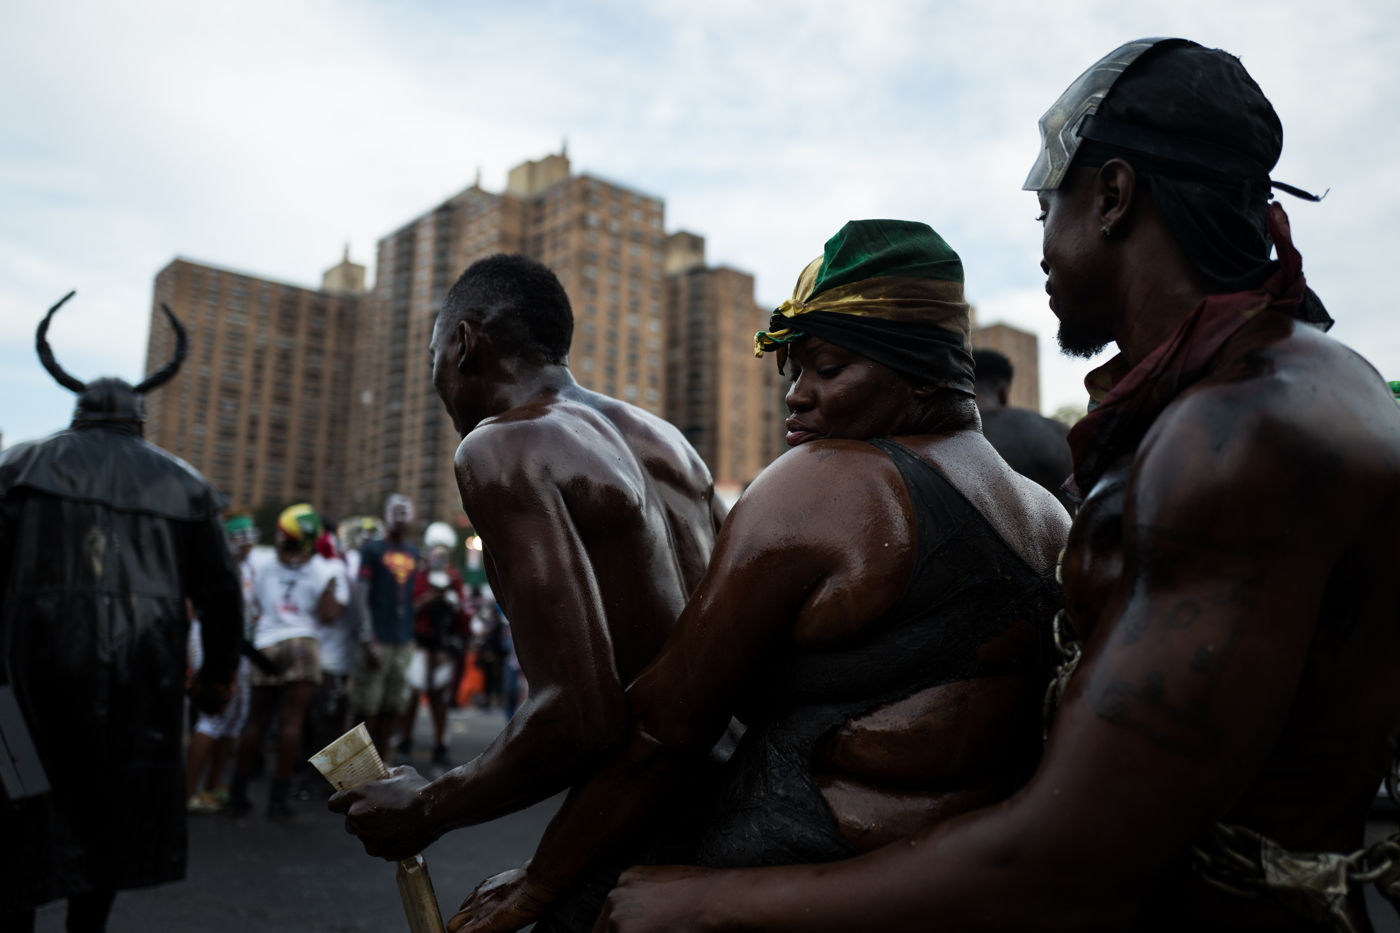 Revelers dance during the overnight-into-dawn celebration called J'Ouvert, ahead of the annual West Indian-American Carnival Day Parade in Brooklyn, NY,September 5, 2016.